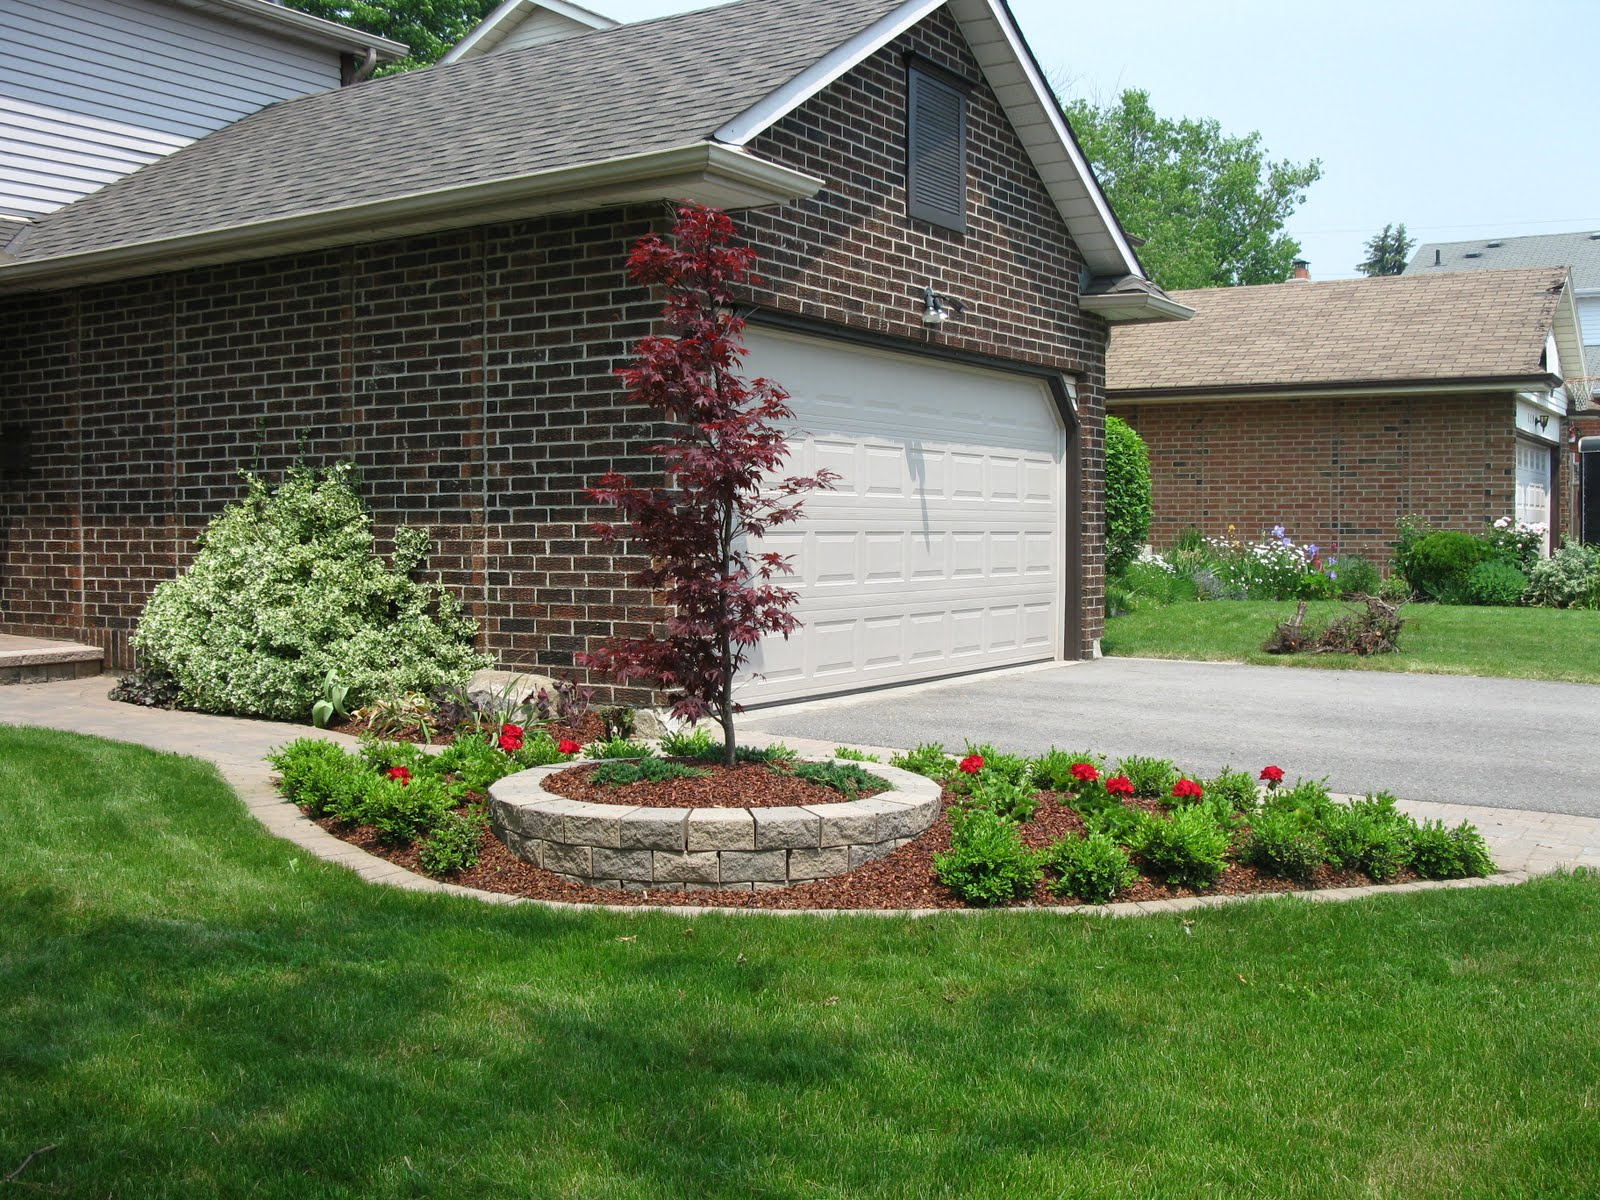 white swan homes and gardens  front yard makeover on jones ave  whitby  ontario